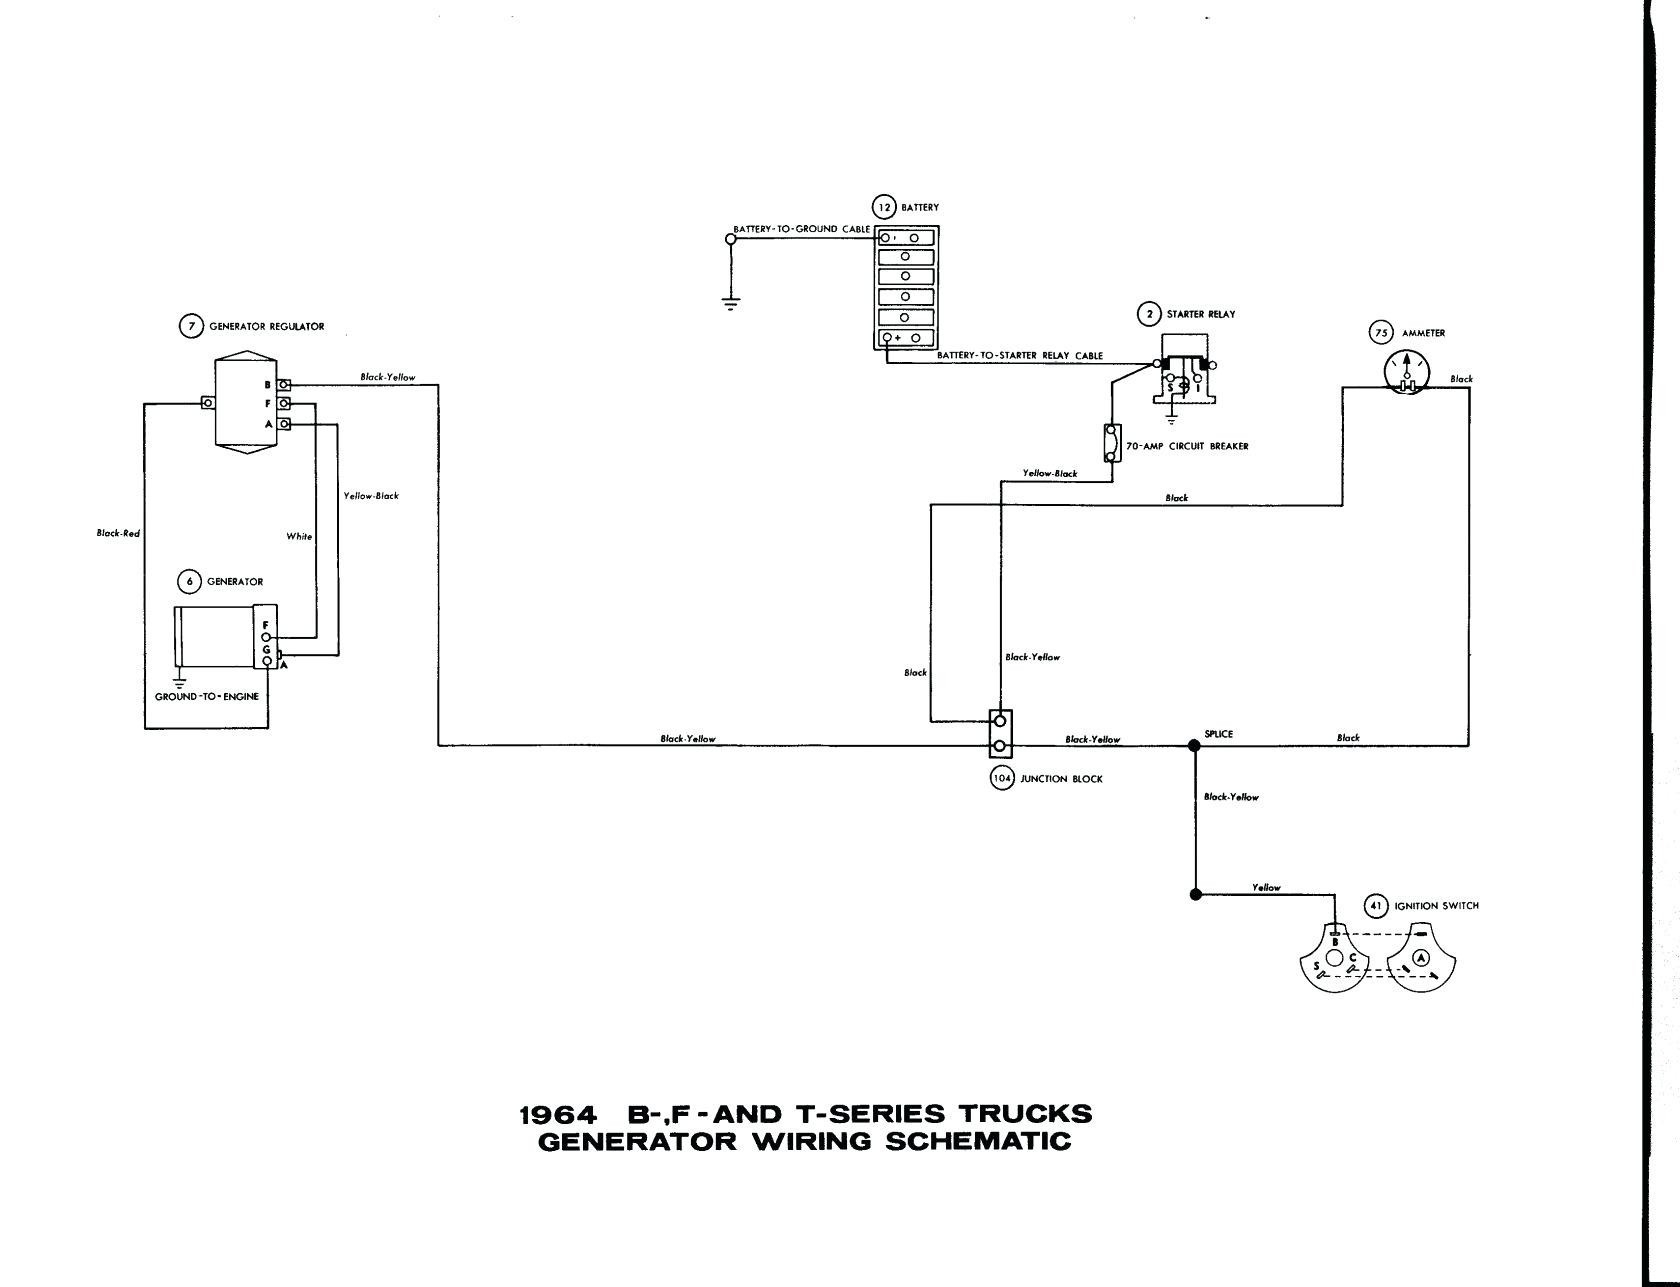 4 Wire Regulator Schematic Wiring Library Fiat Ducato Alternator Diagram Ac Delco Download For New